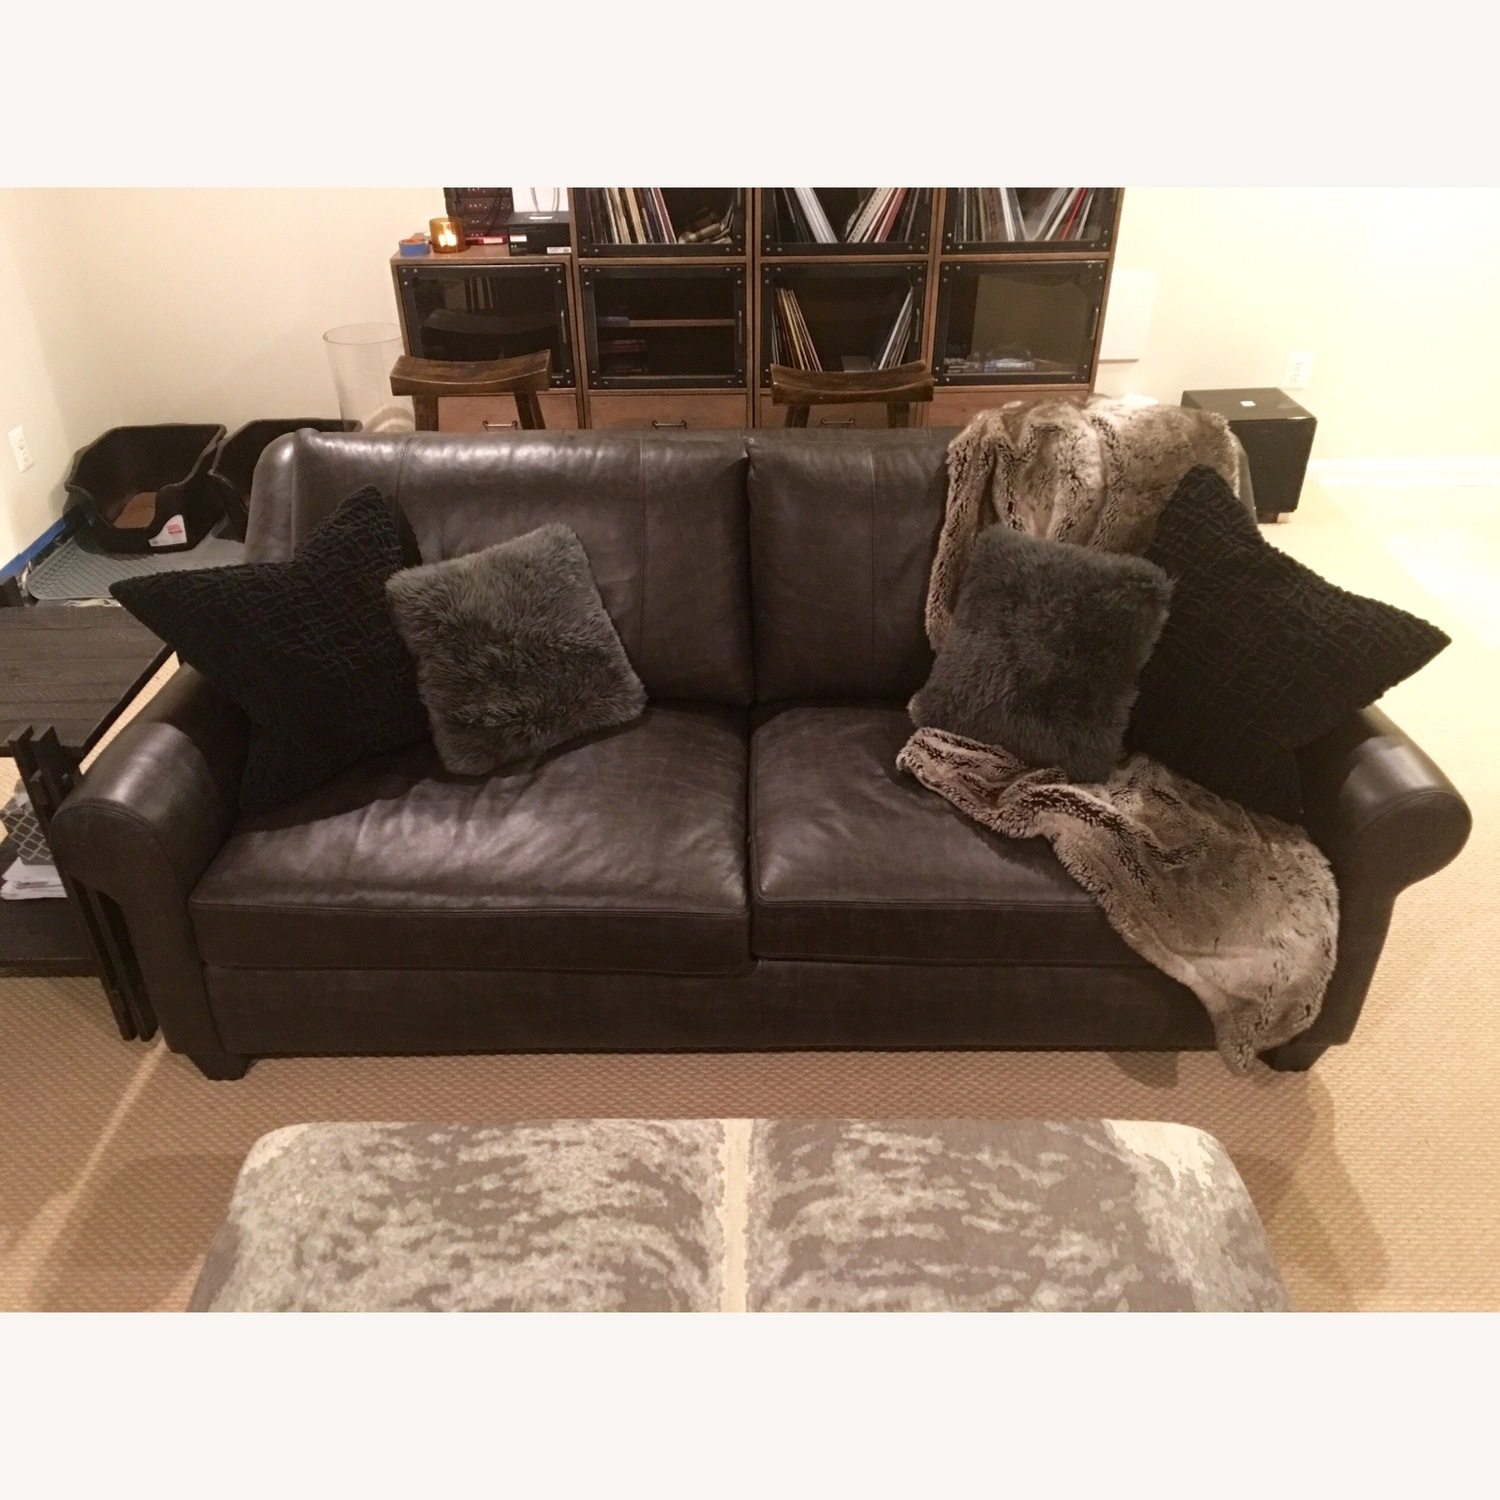 Arhaus Rockway Leather Sofa - image-1